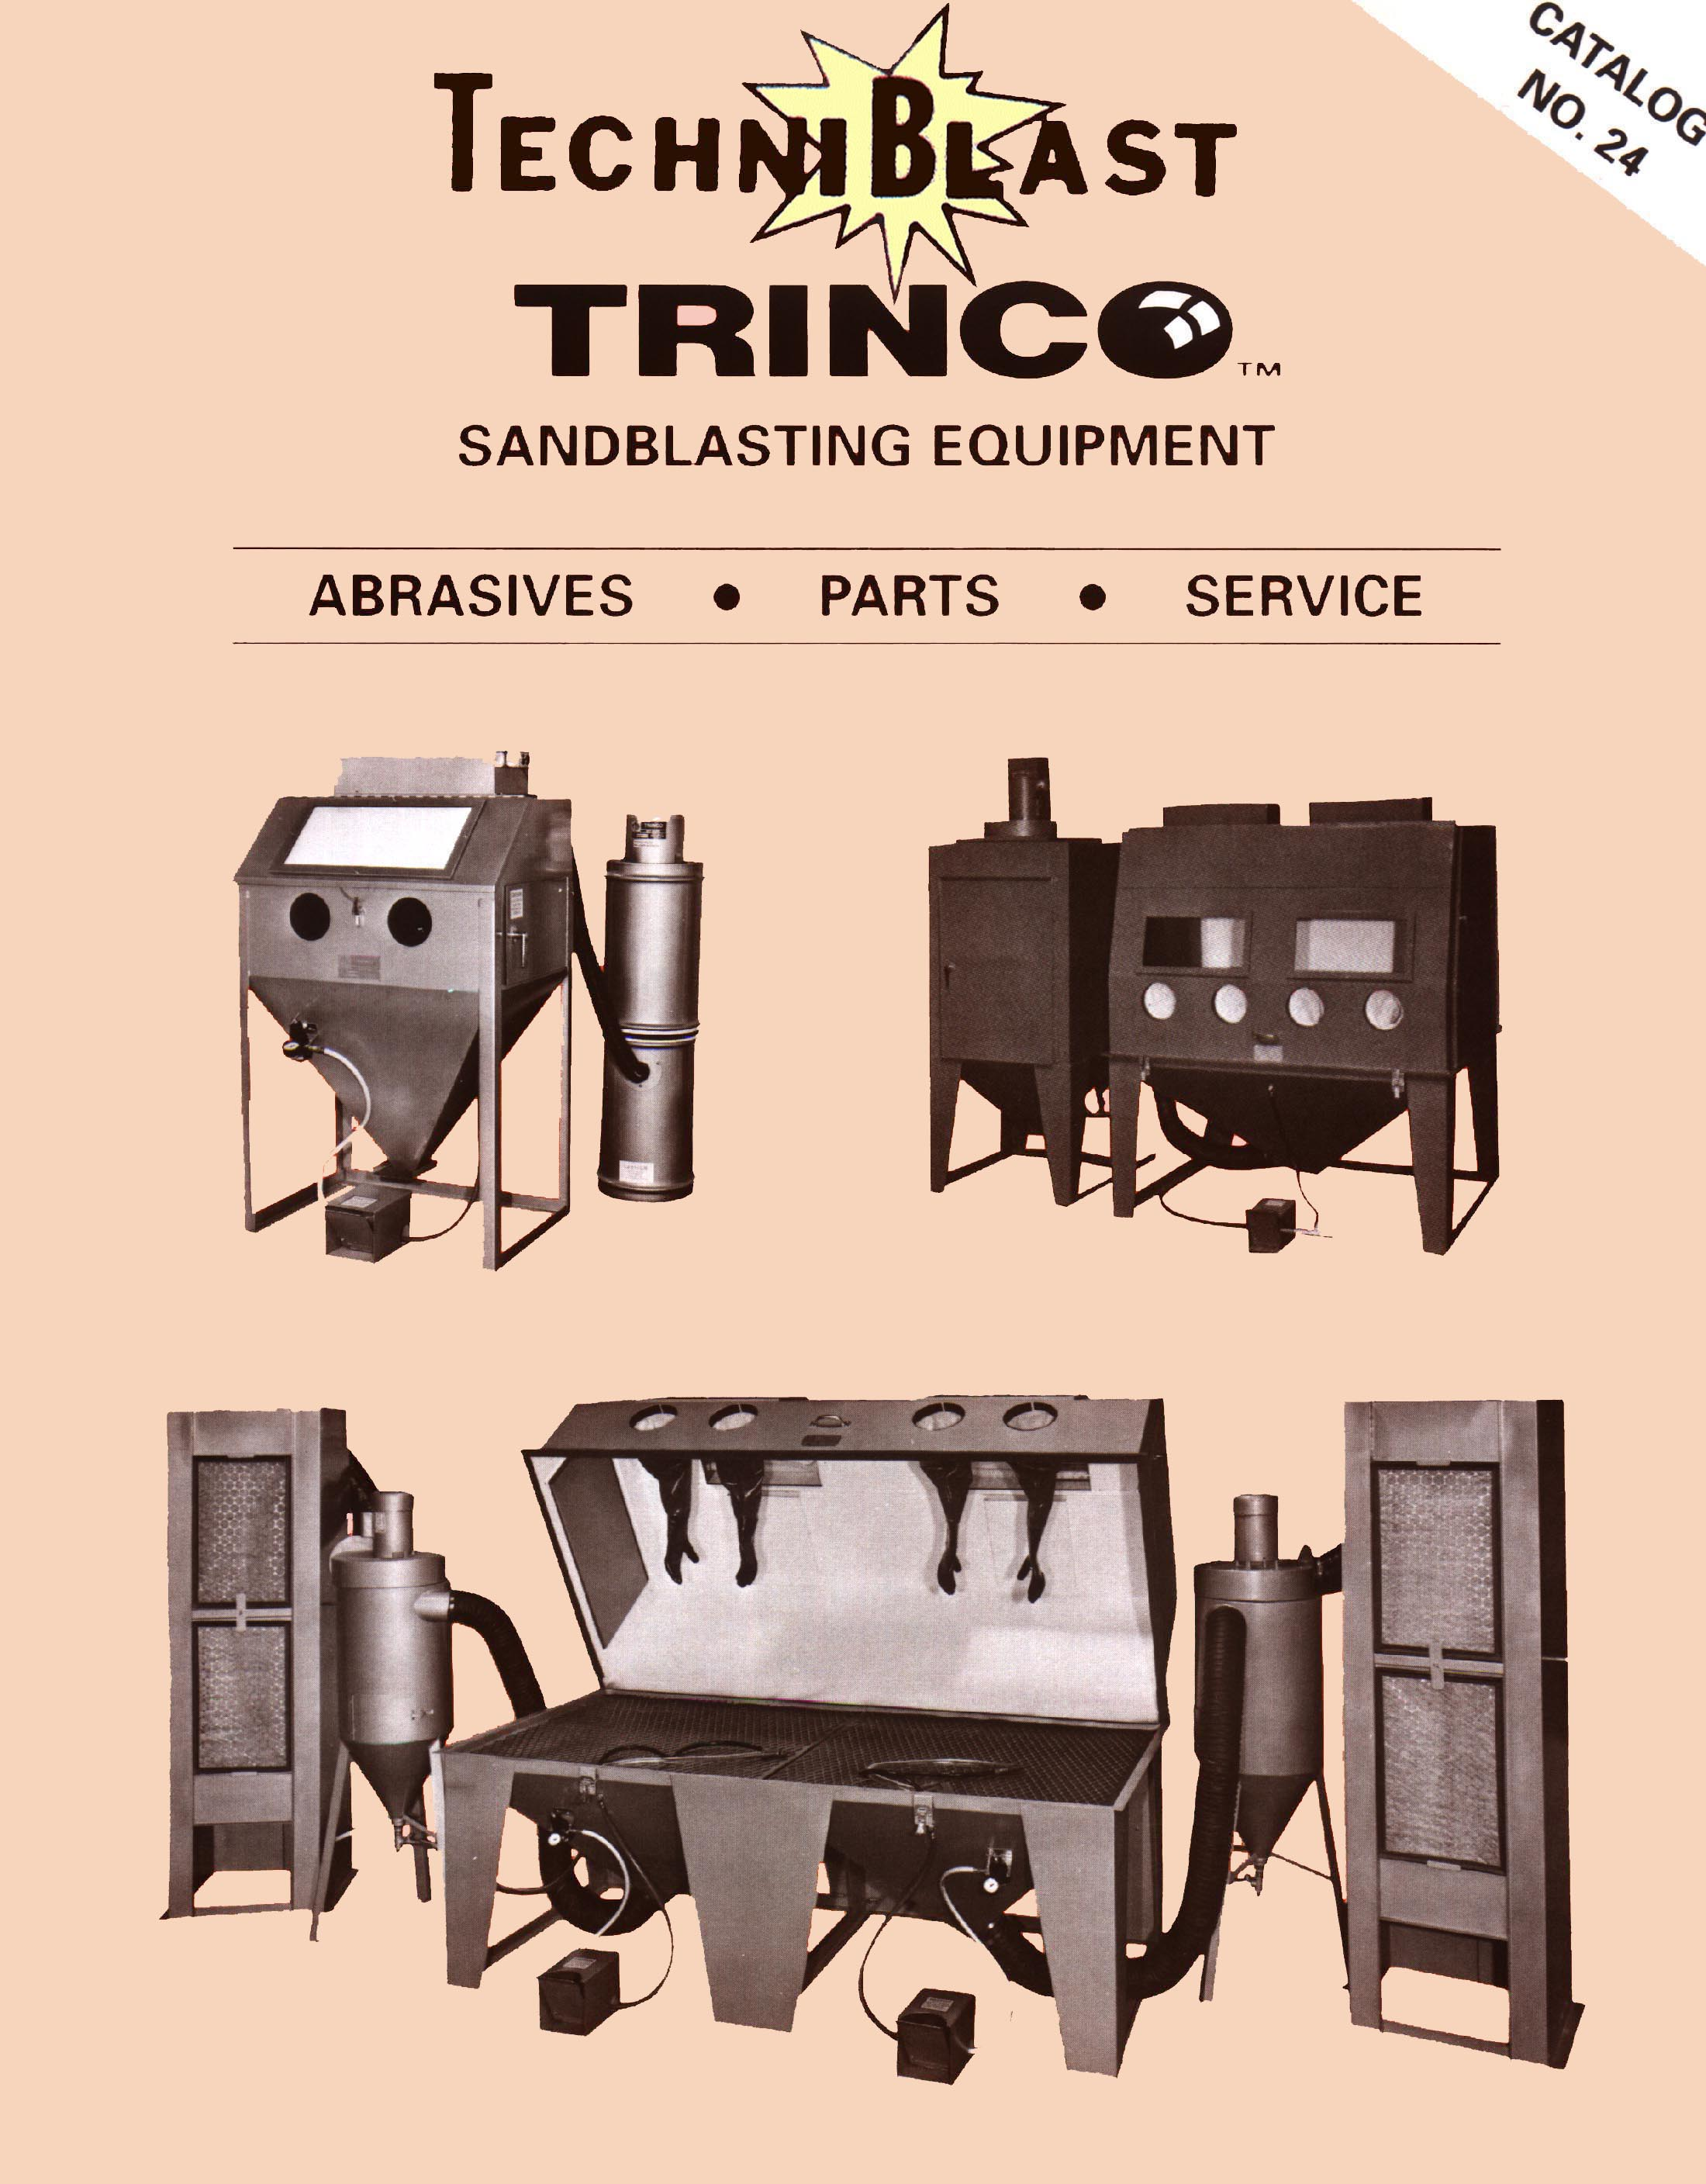 Trinco Air Blast Equipment